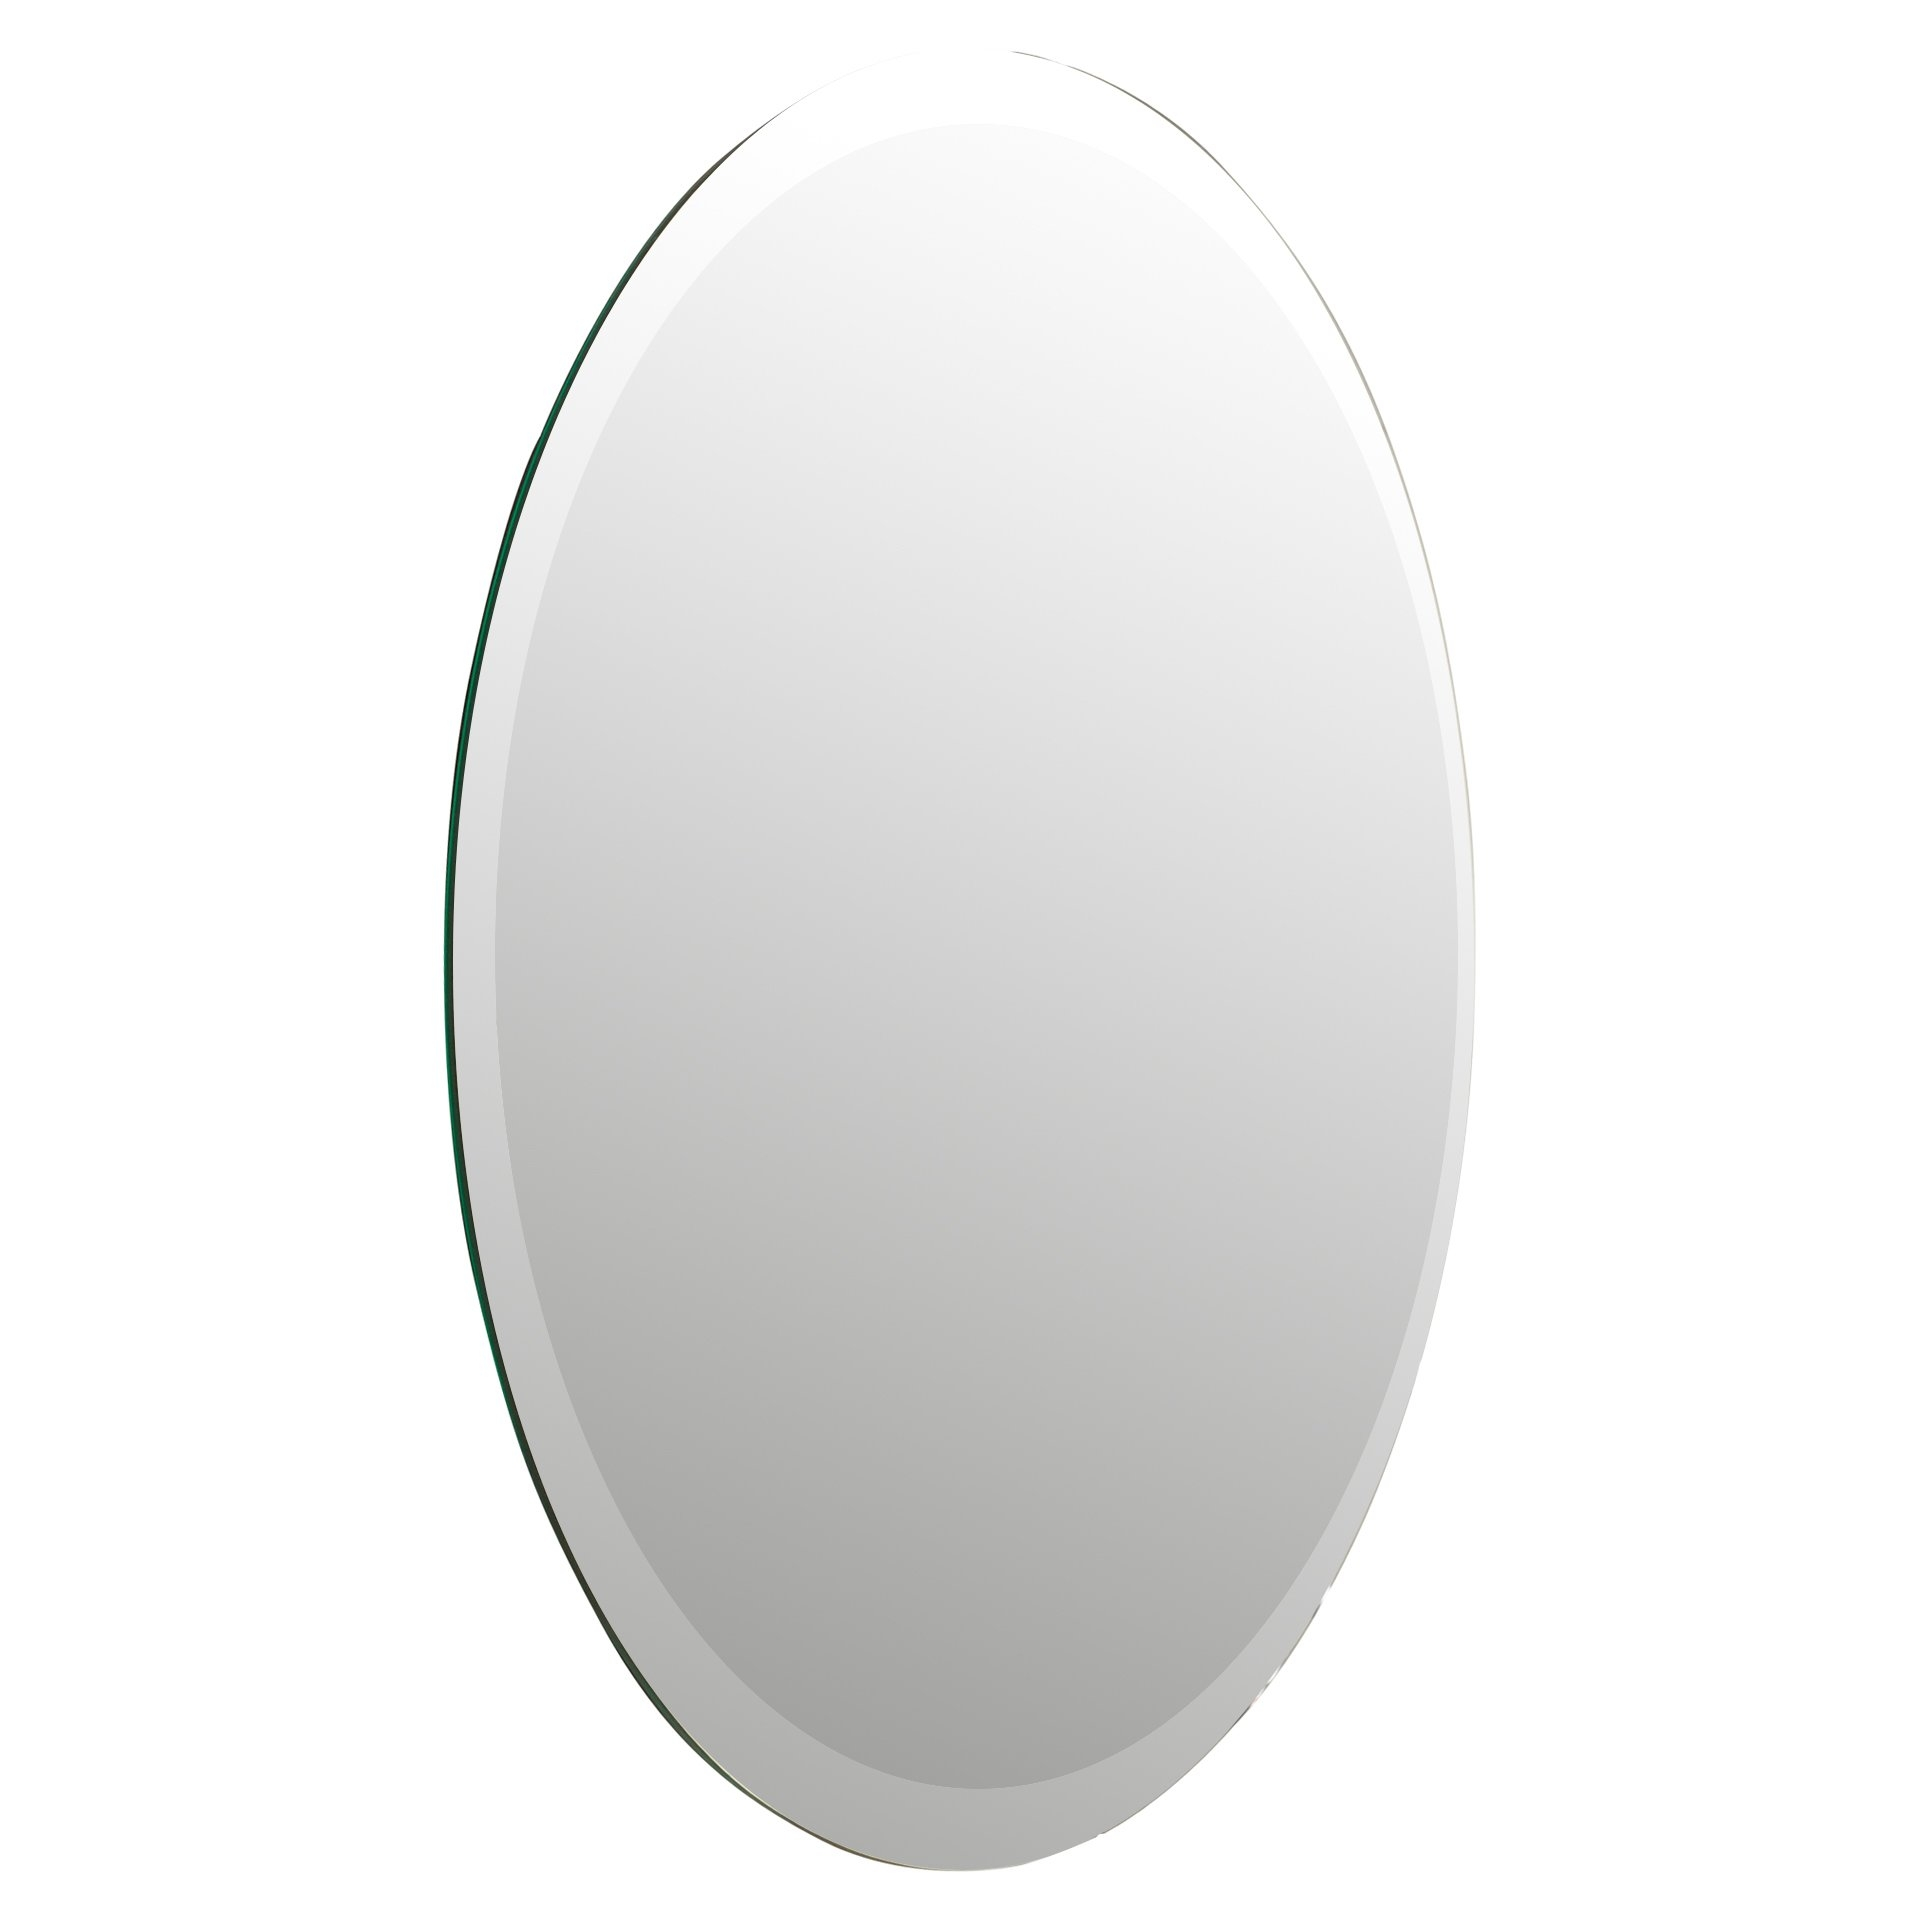 Brayden Studio Oval Bevel Frameless Wall Mirror Reviews Wayfair In White Oval Wall Mirror (Image 2 of 15)